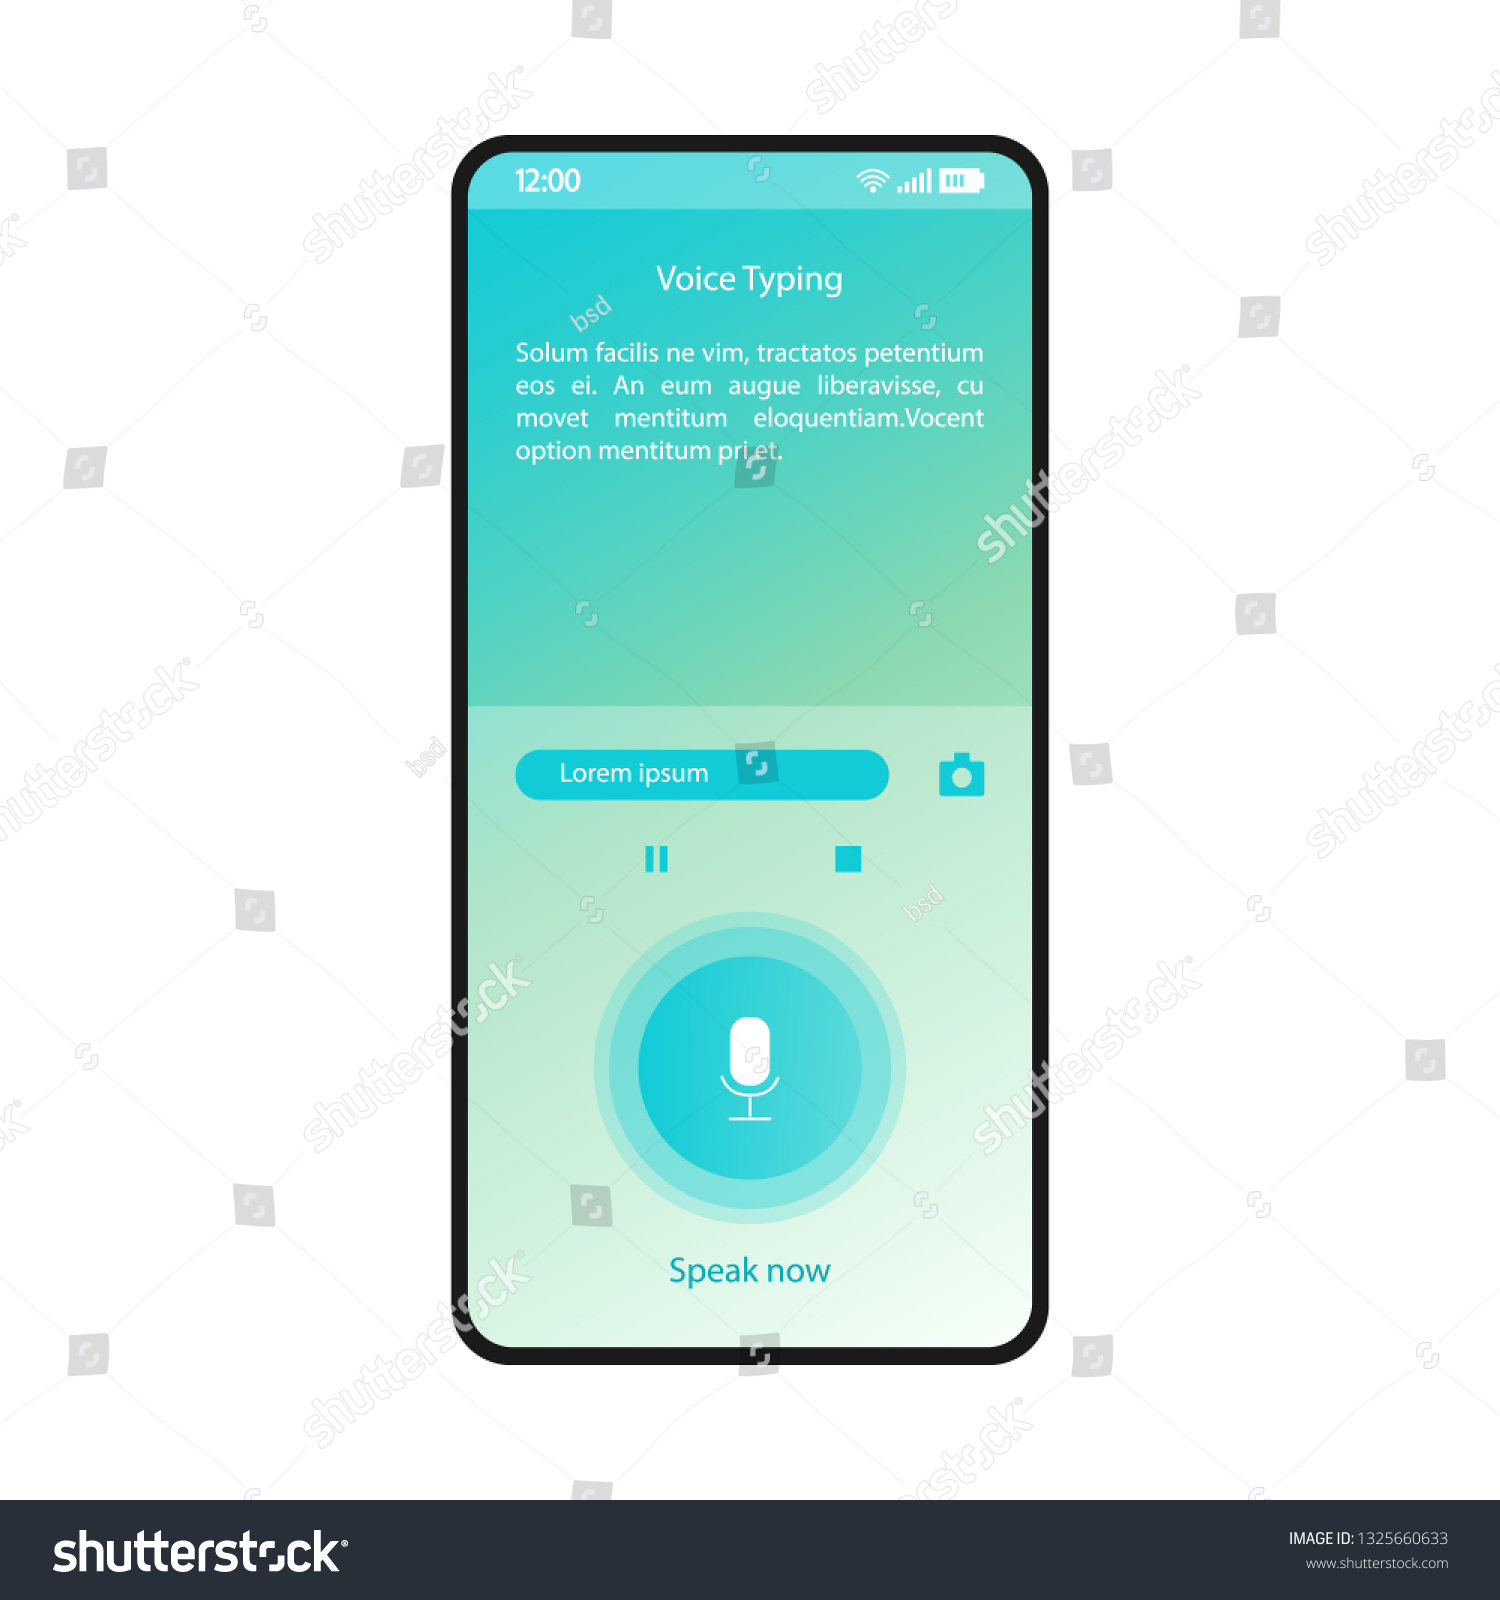 Voice Typing Smartphone Interface Vector Template Stock